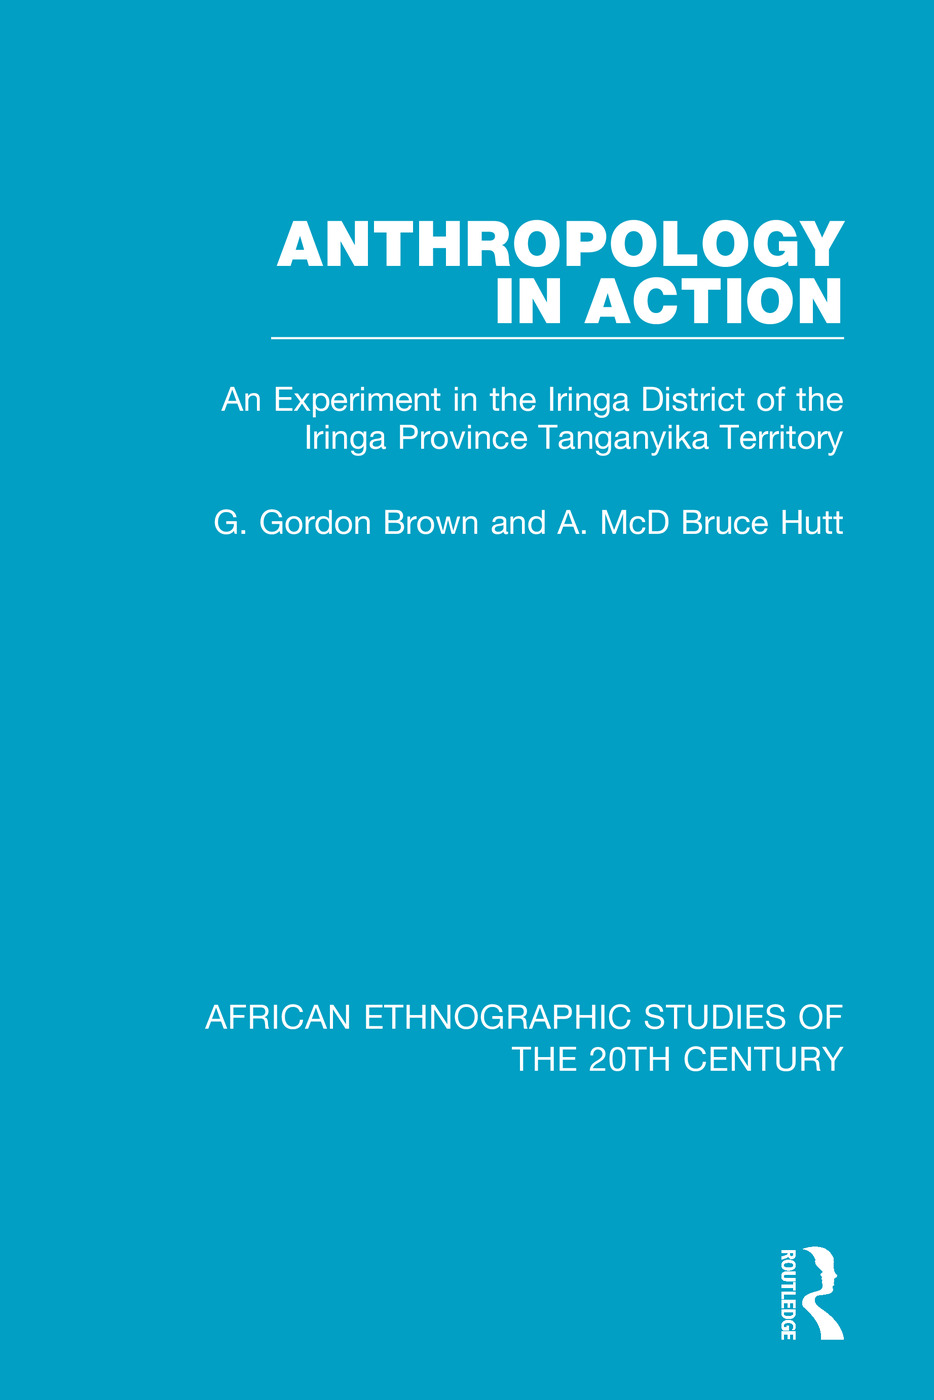 Anthropology in Action: An Experiment in the Iringa District of the Iringa Province Tanganyika Terrirtory book cover